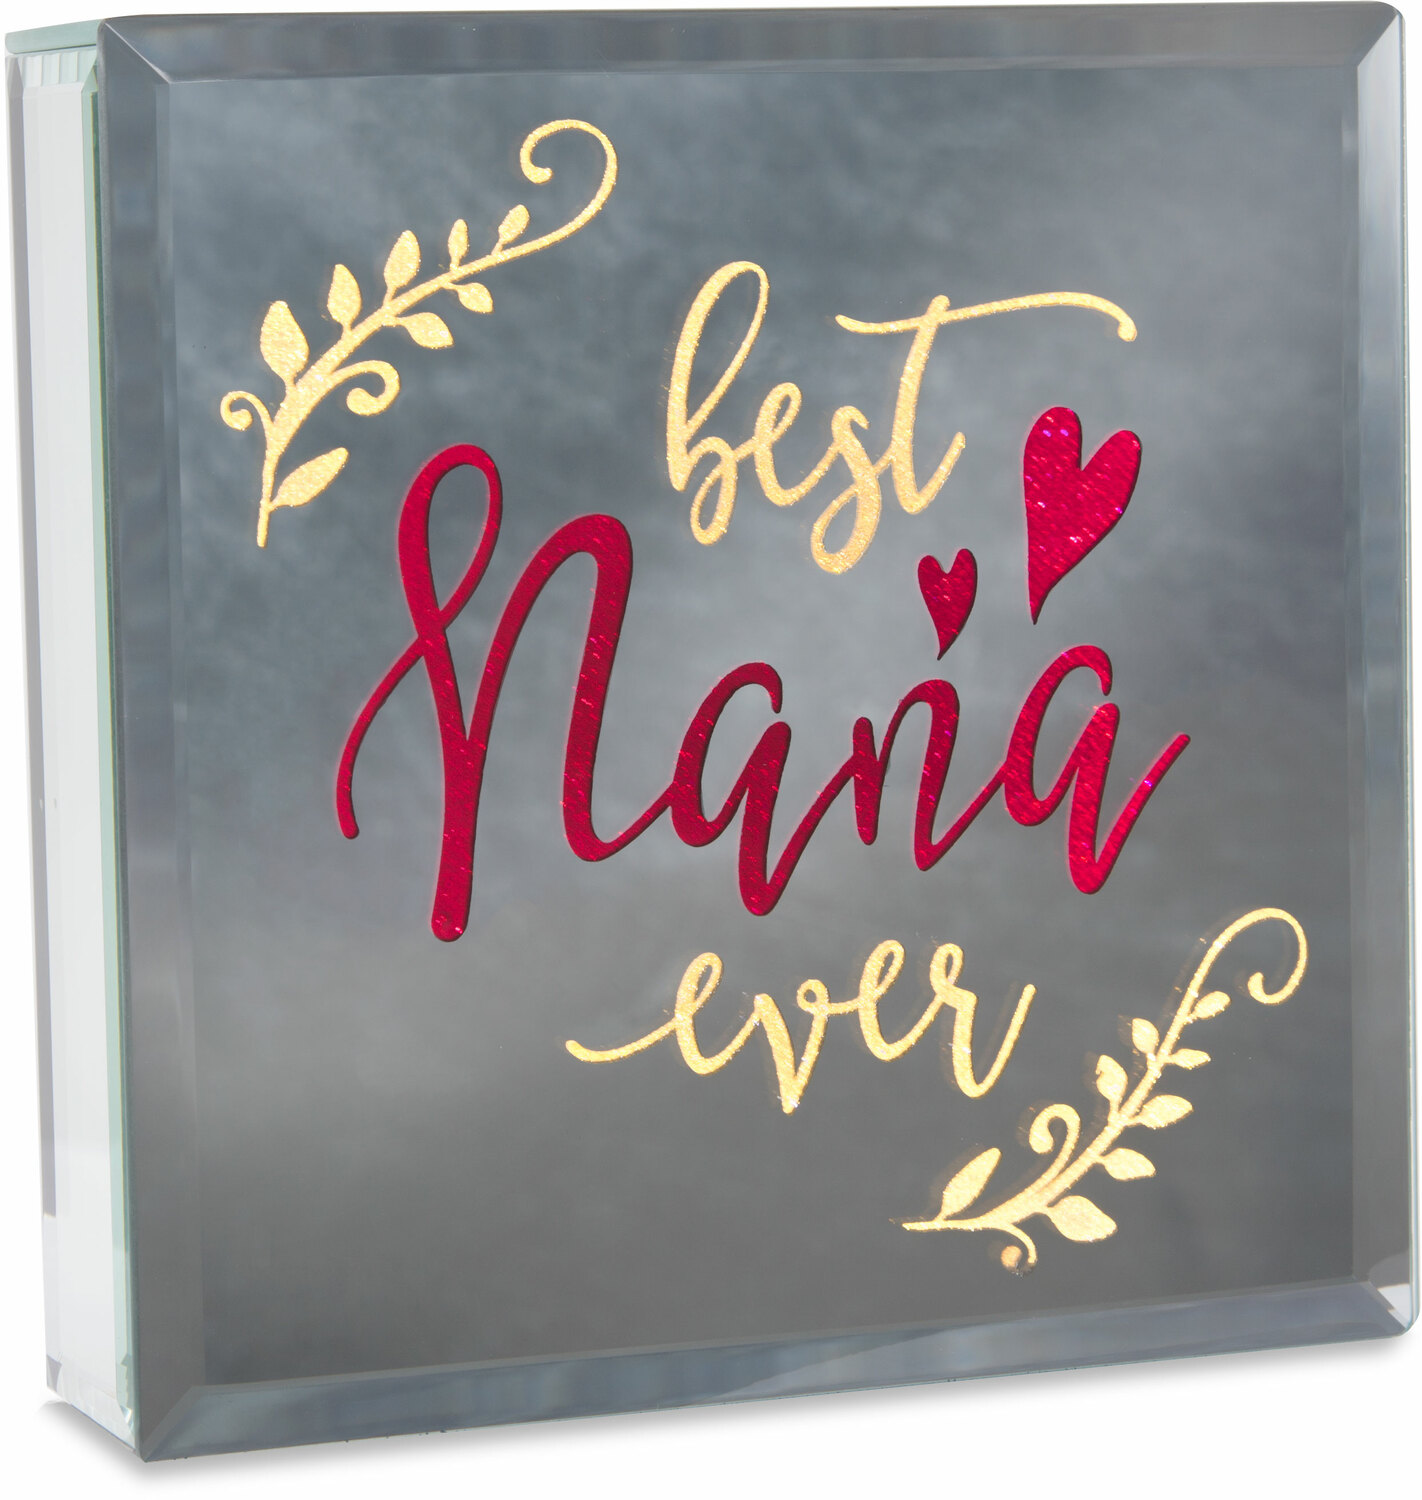 "Nana by Reflections of You - Nana - 6"" Lit-Mirrored Plaque"